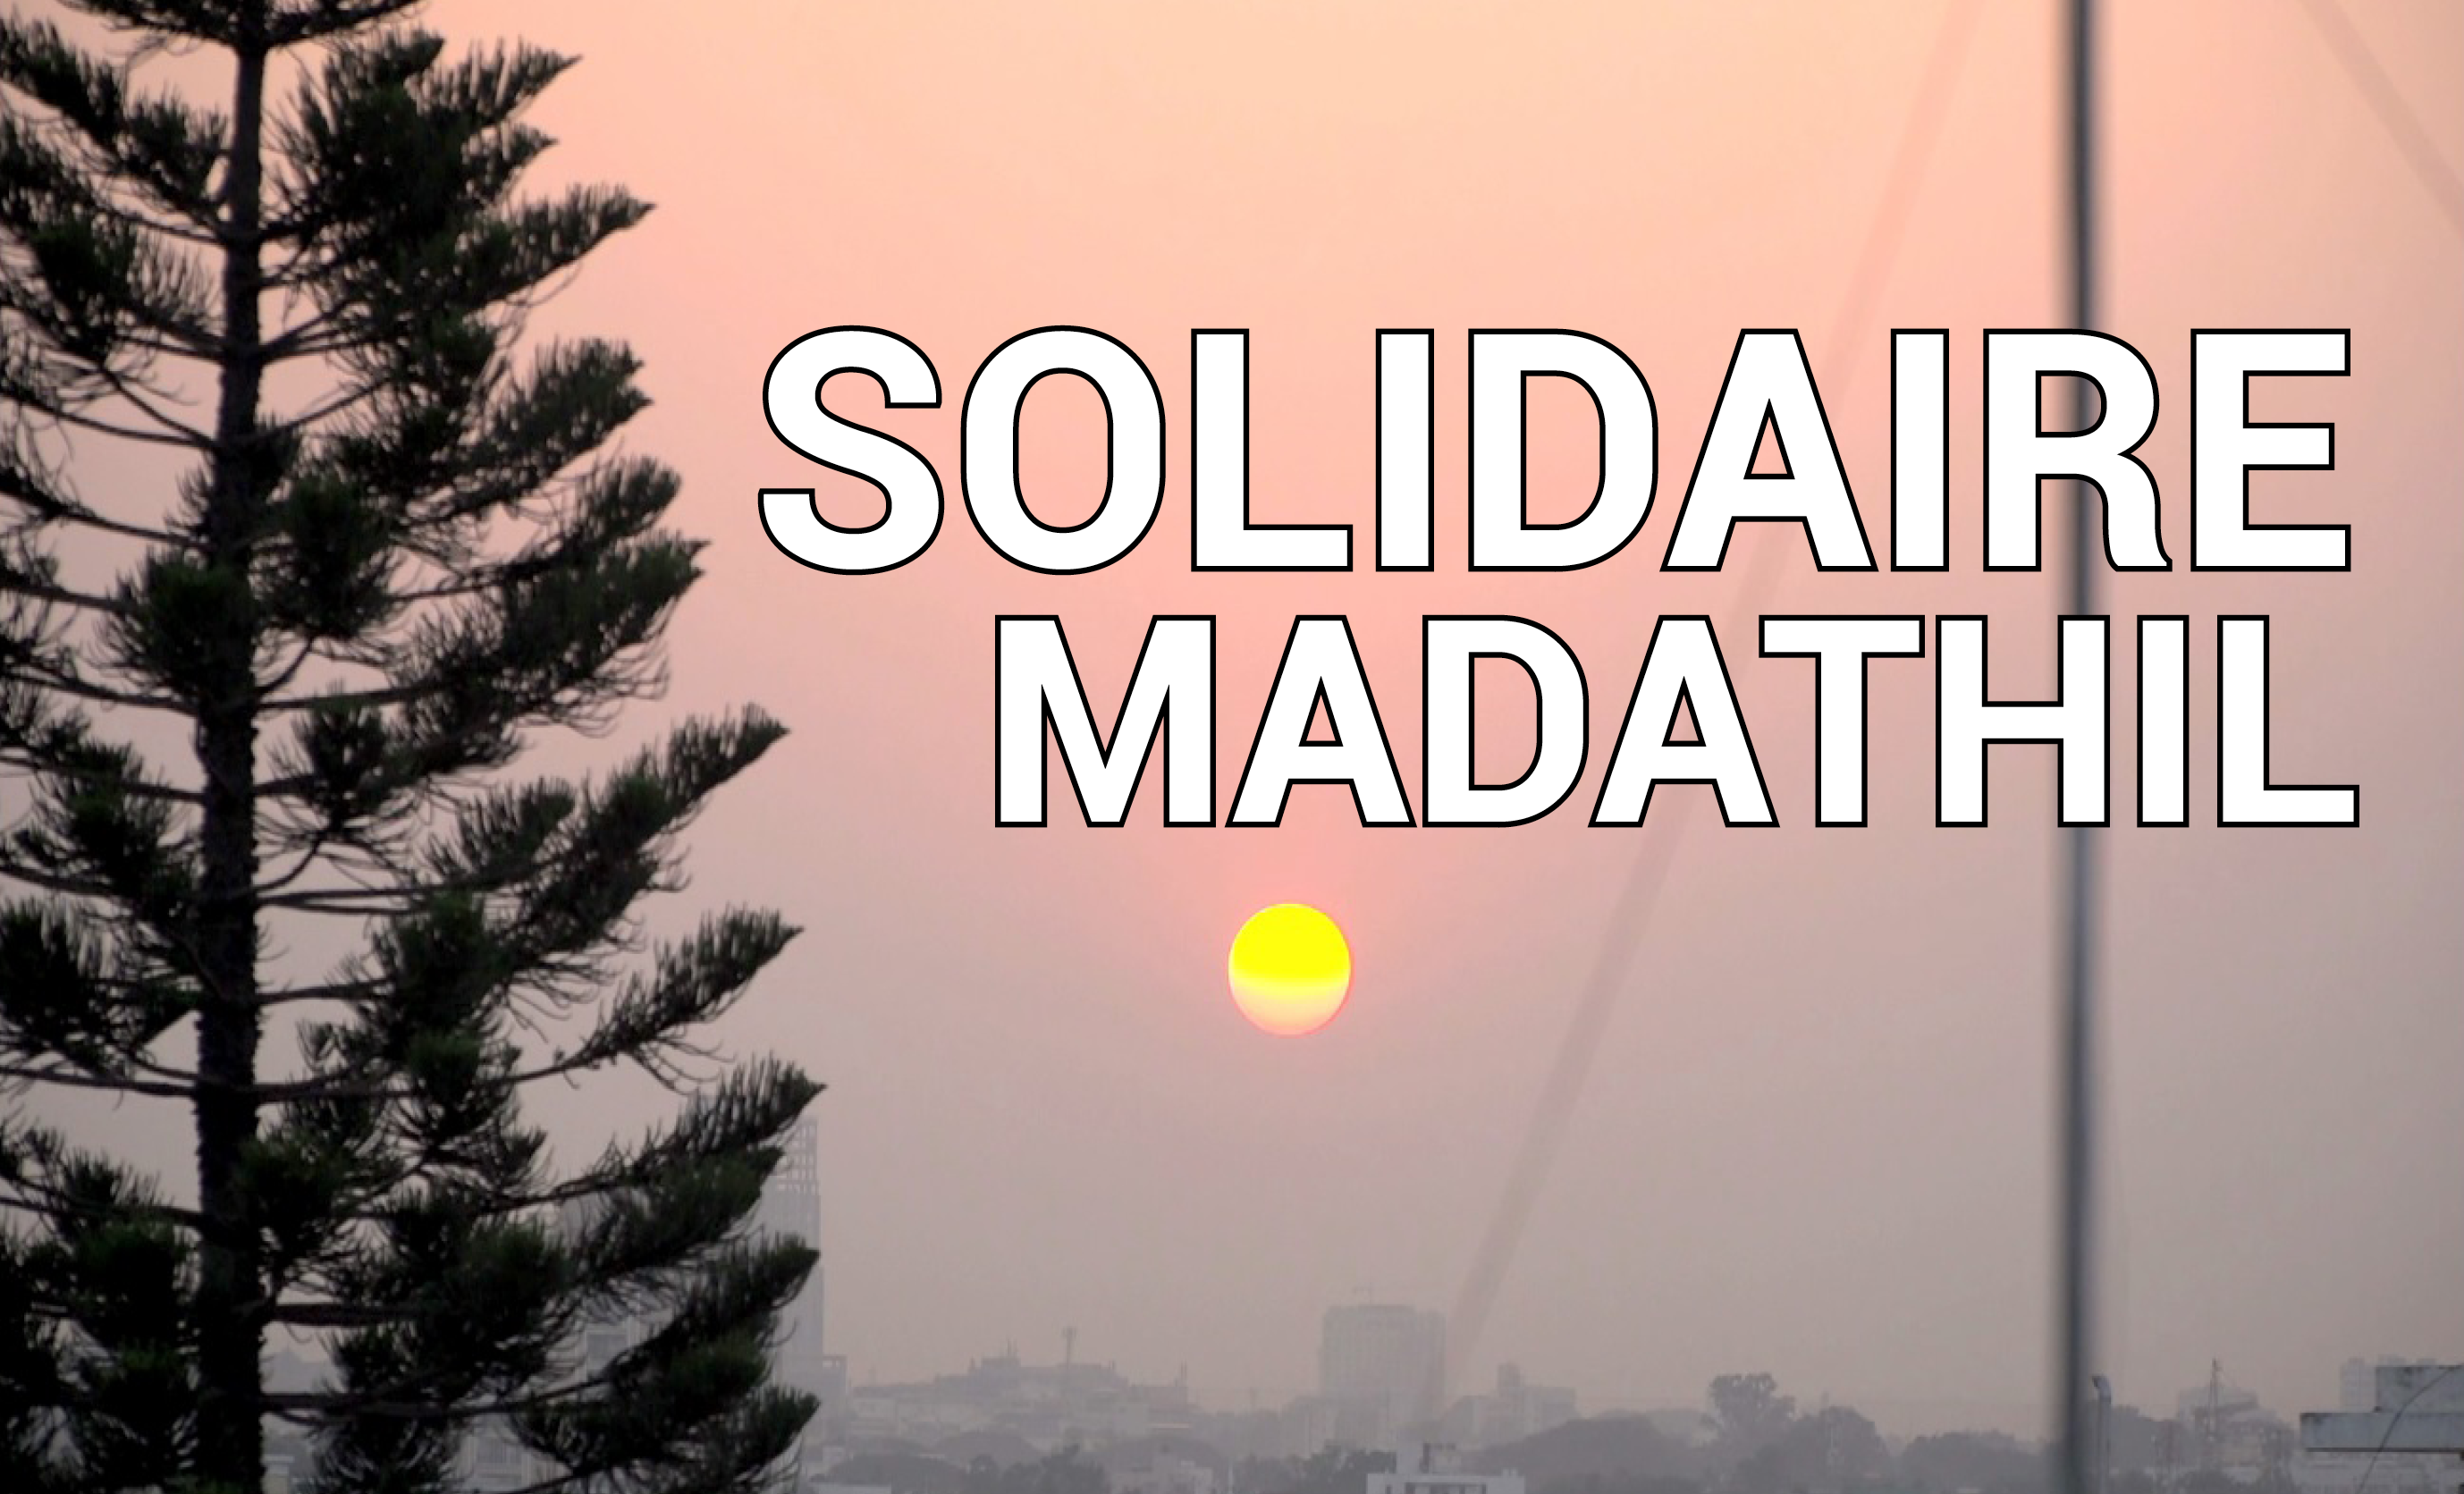 visuel_solidaire3-1528984839.png